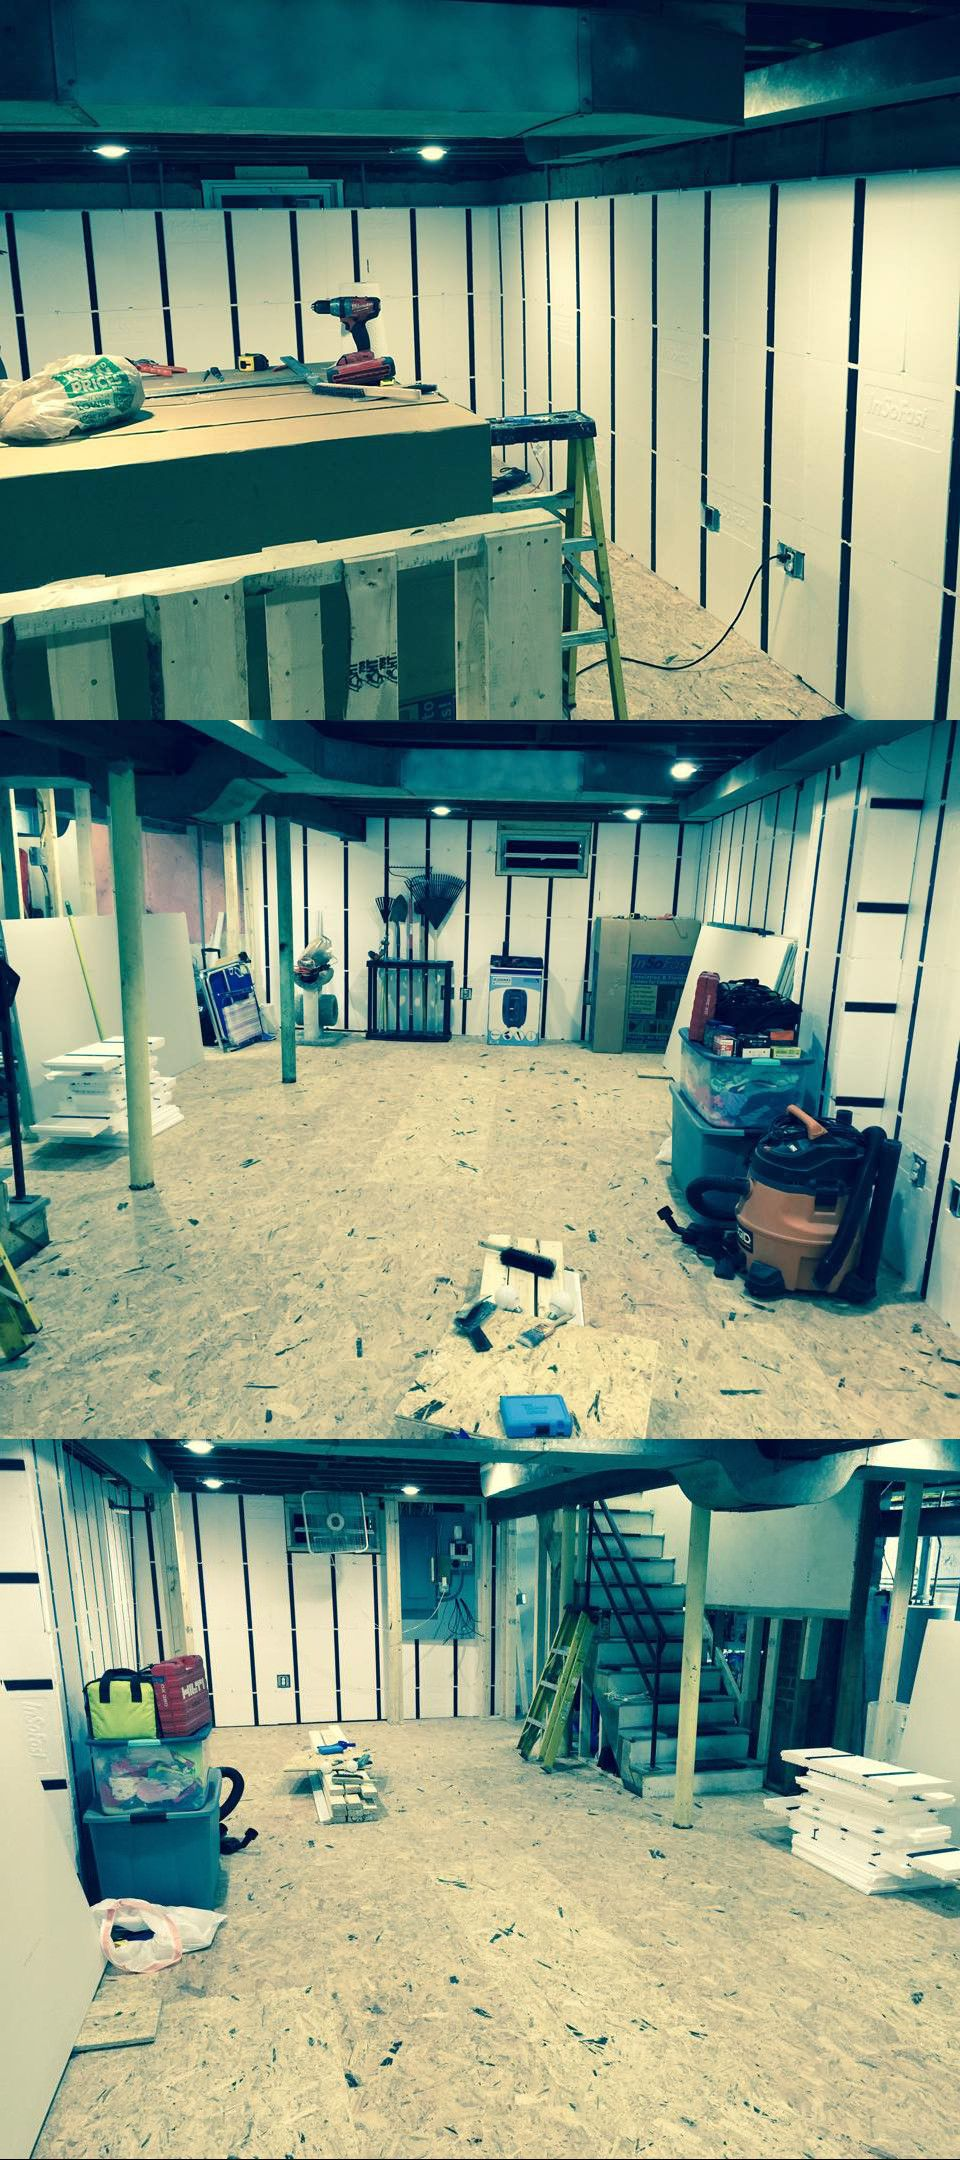 Three views of a DIY basement renovation in progress with ...